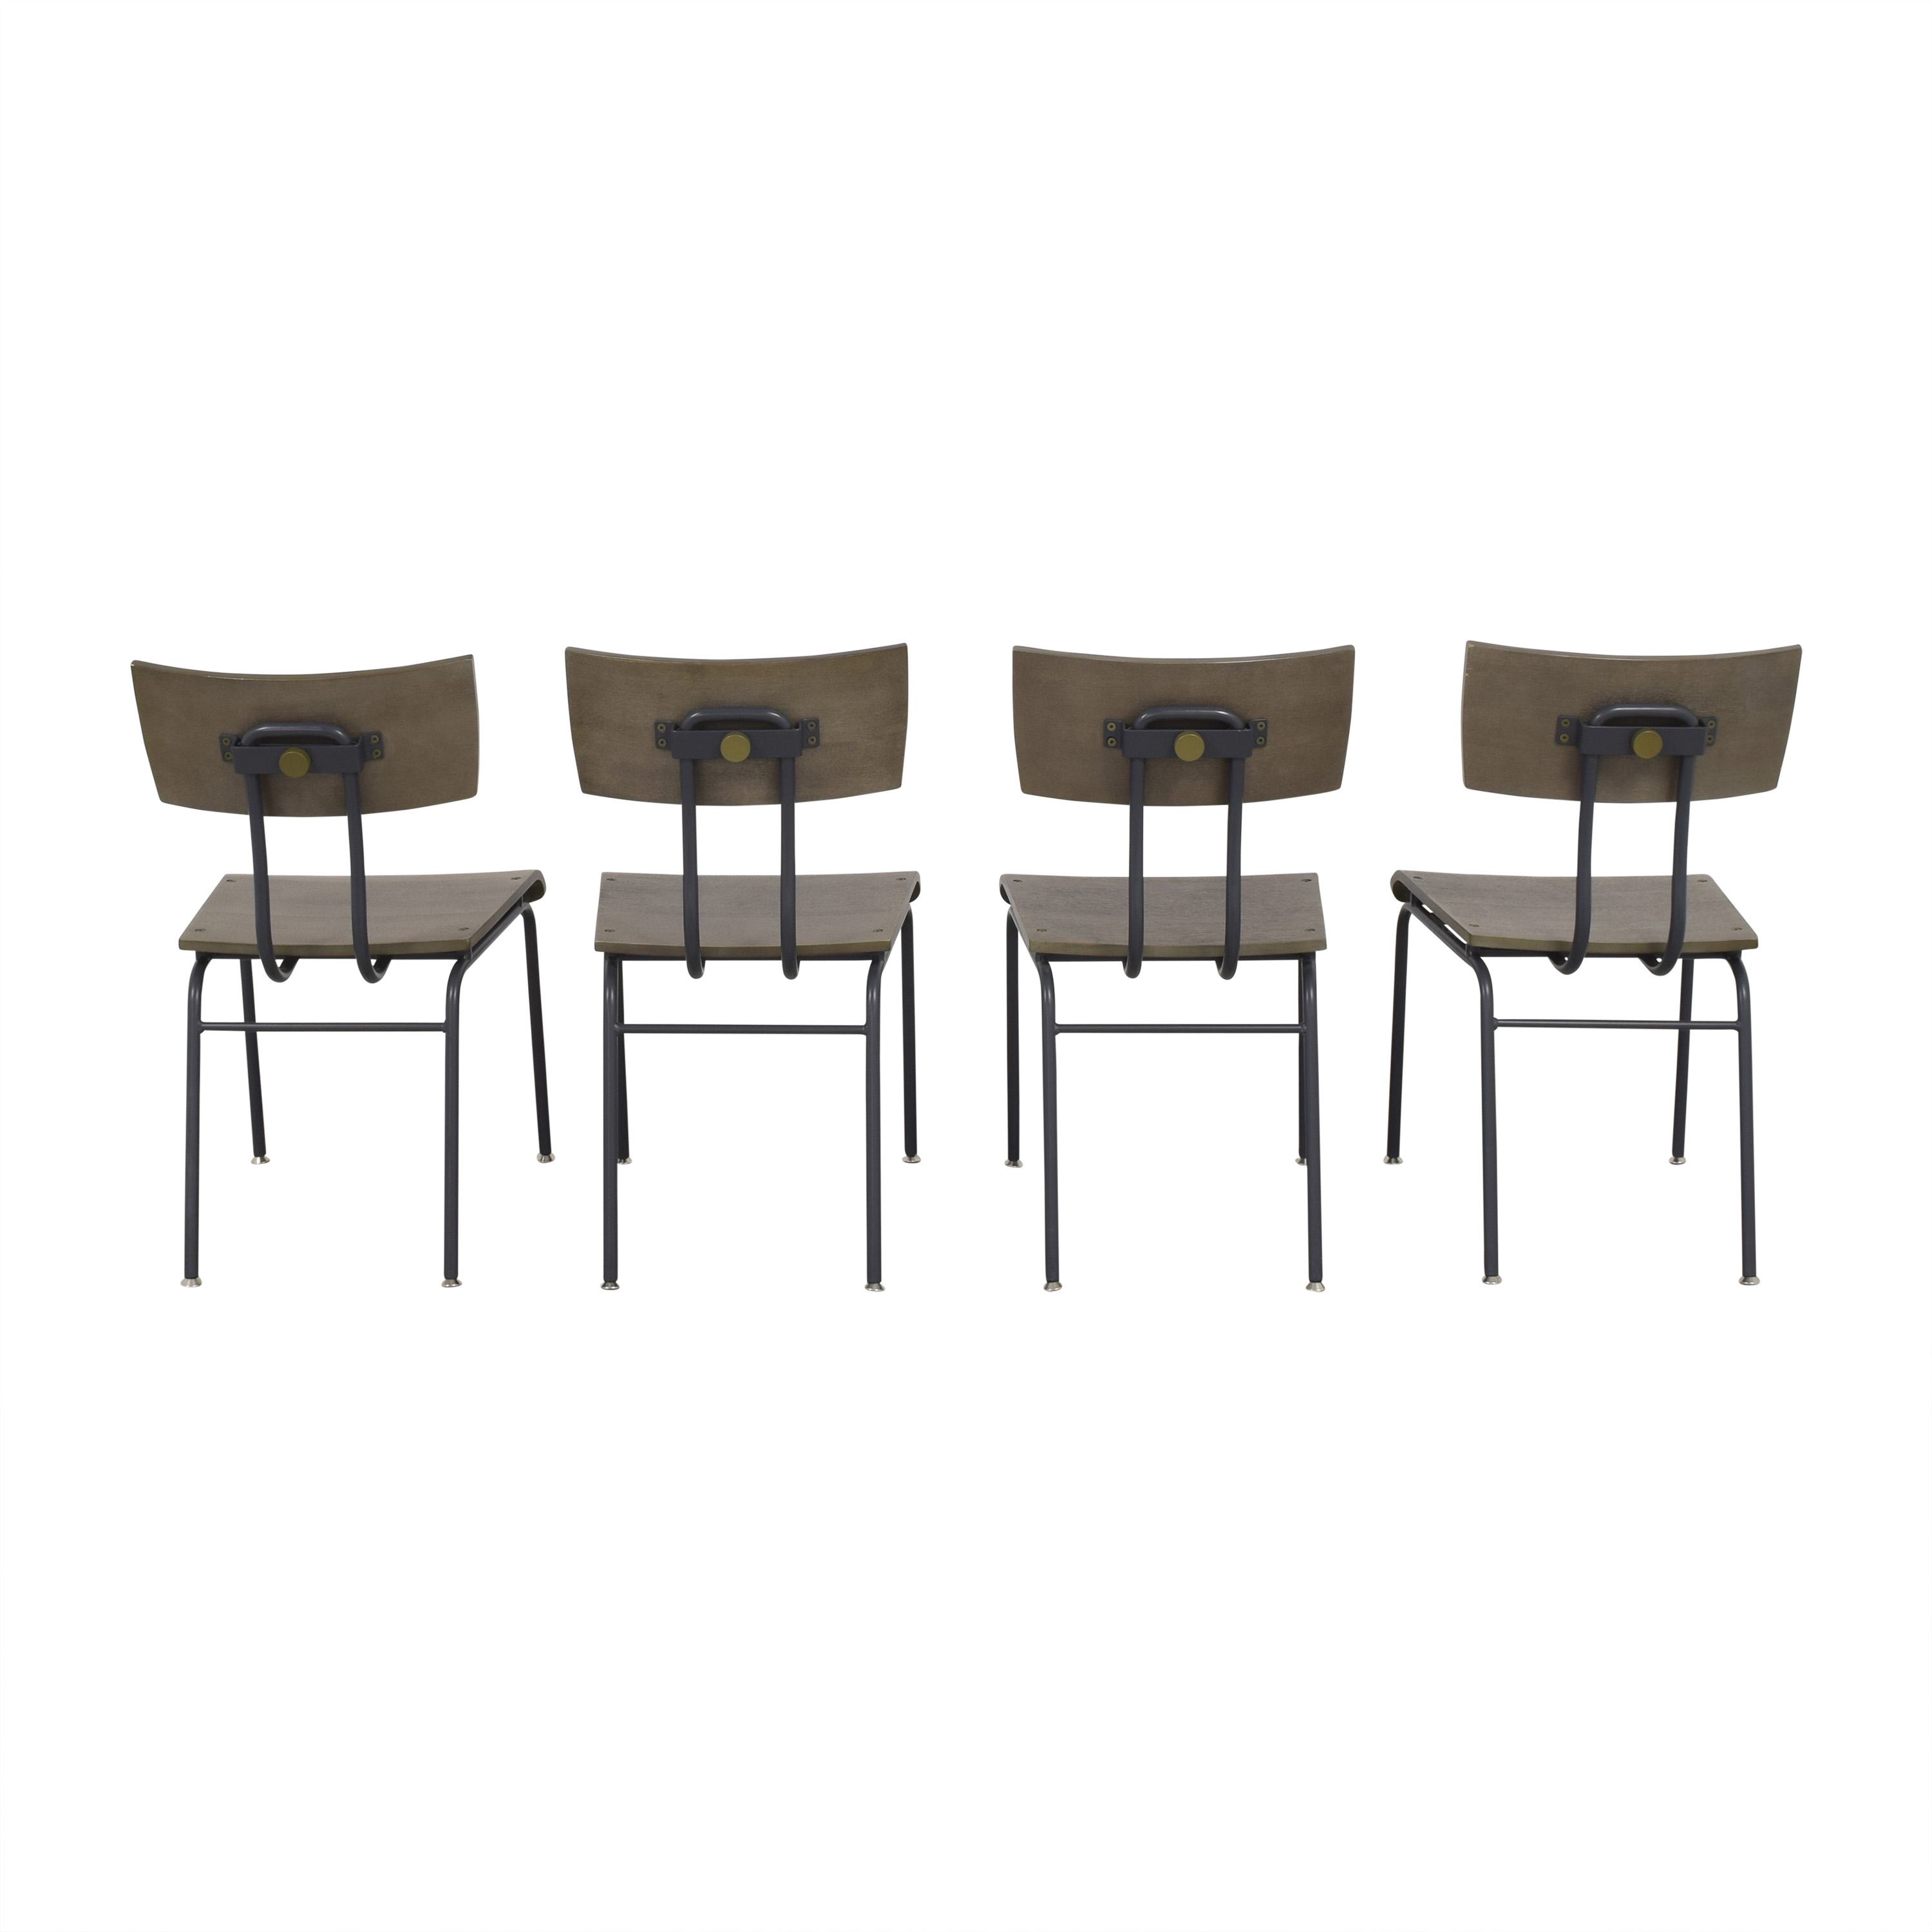 Crate & Barrel Scholar Dining Chairs / Dining Chairs